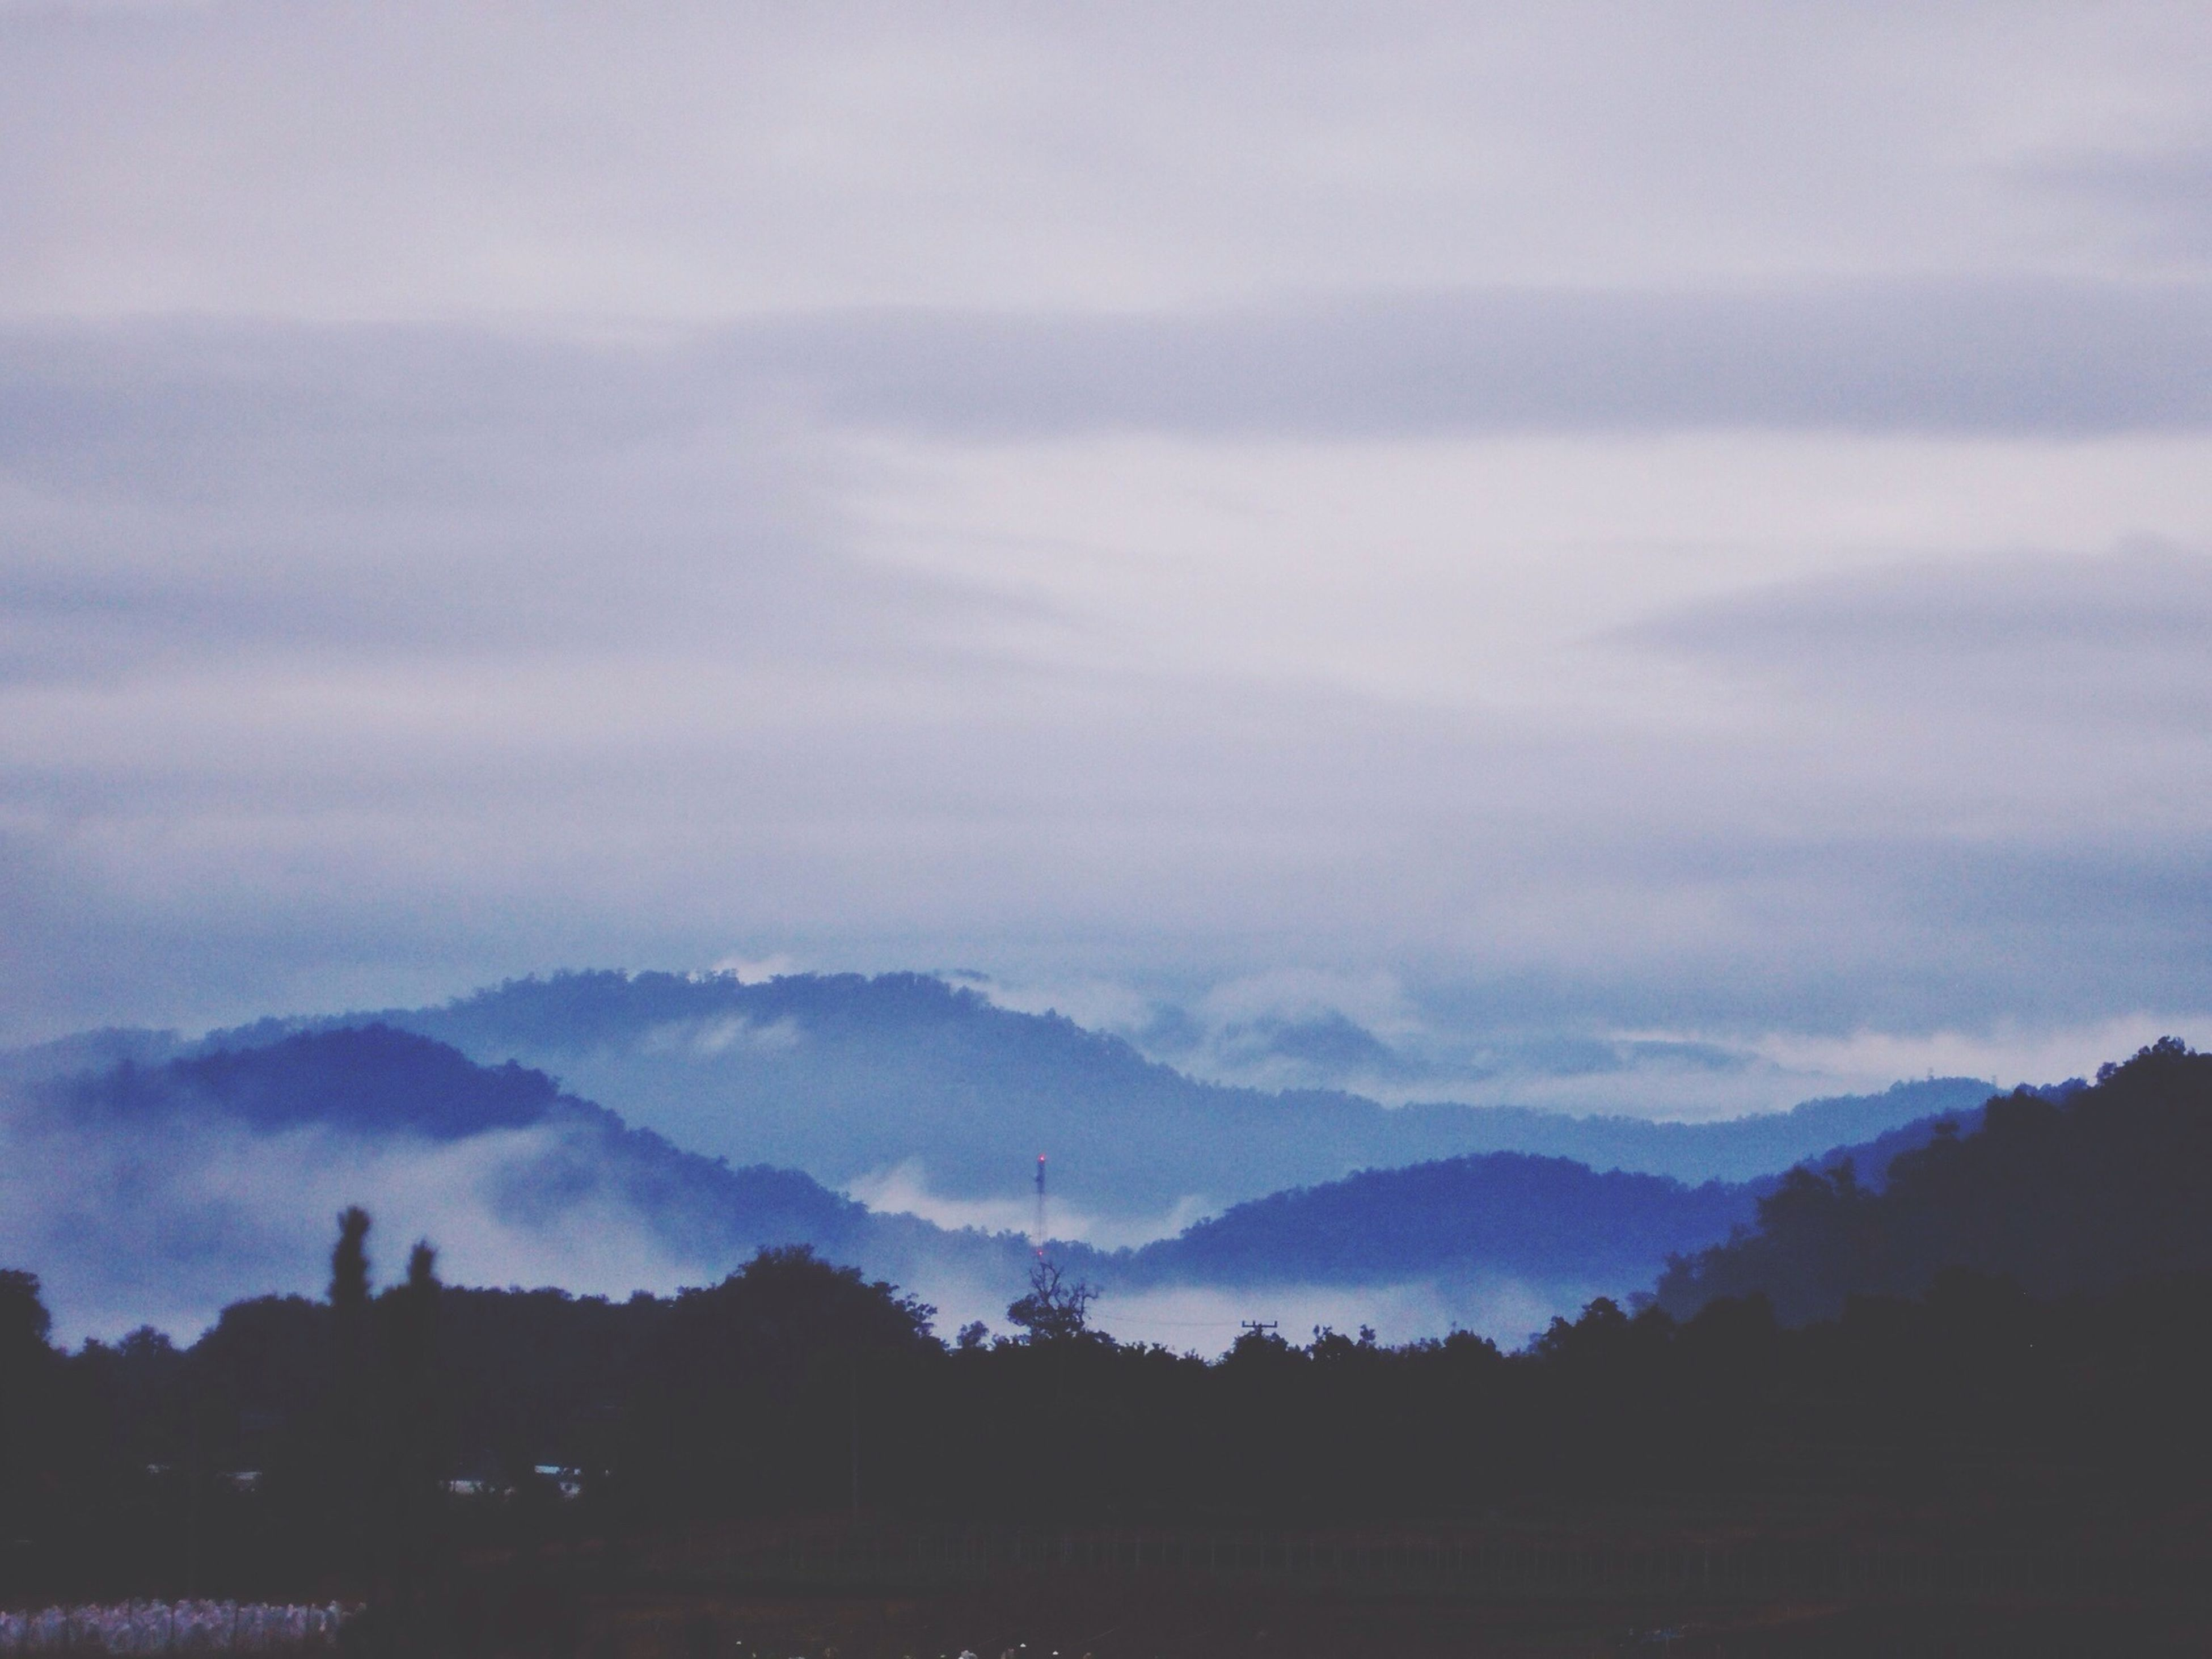 sky, no people, nature, beauty in nature, cloud - sky, scenics, outdoors, mountain, tree, architecture, day